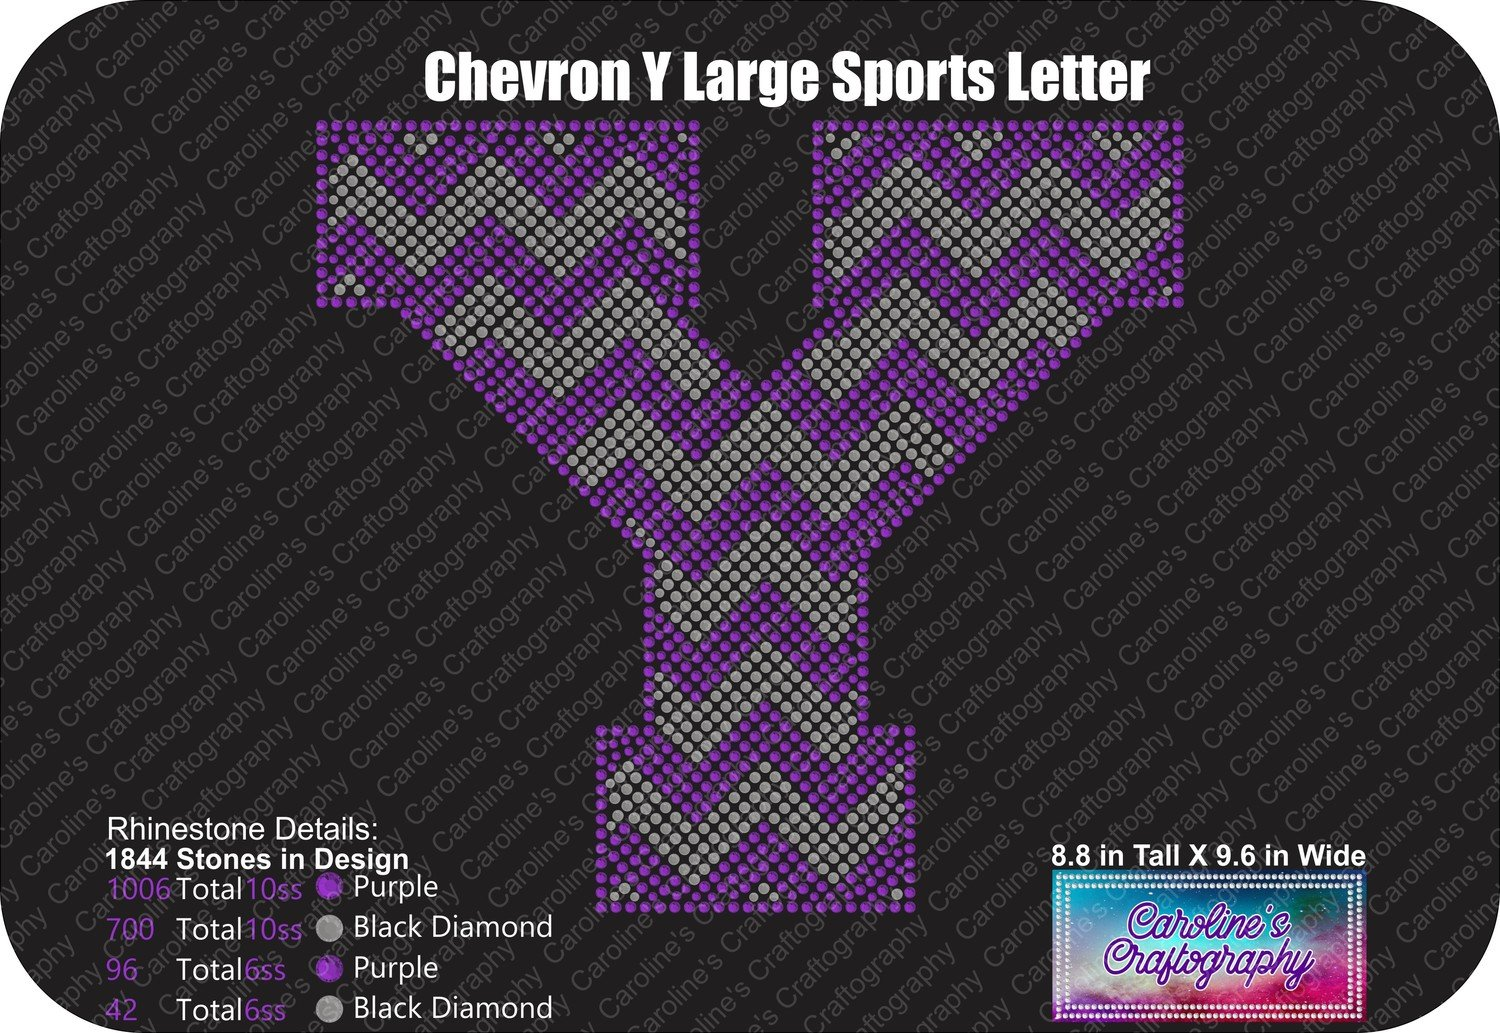 Y Chevron Large Sports Letter